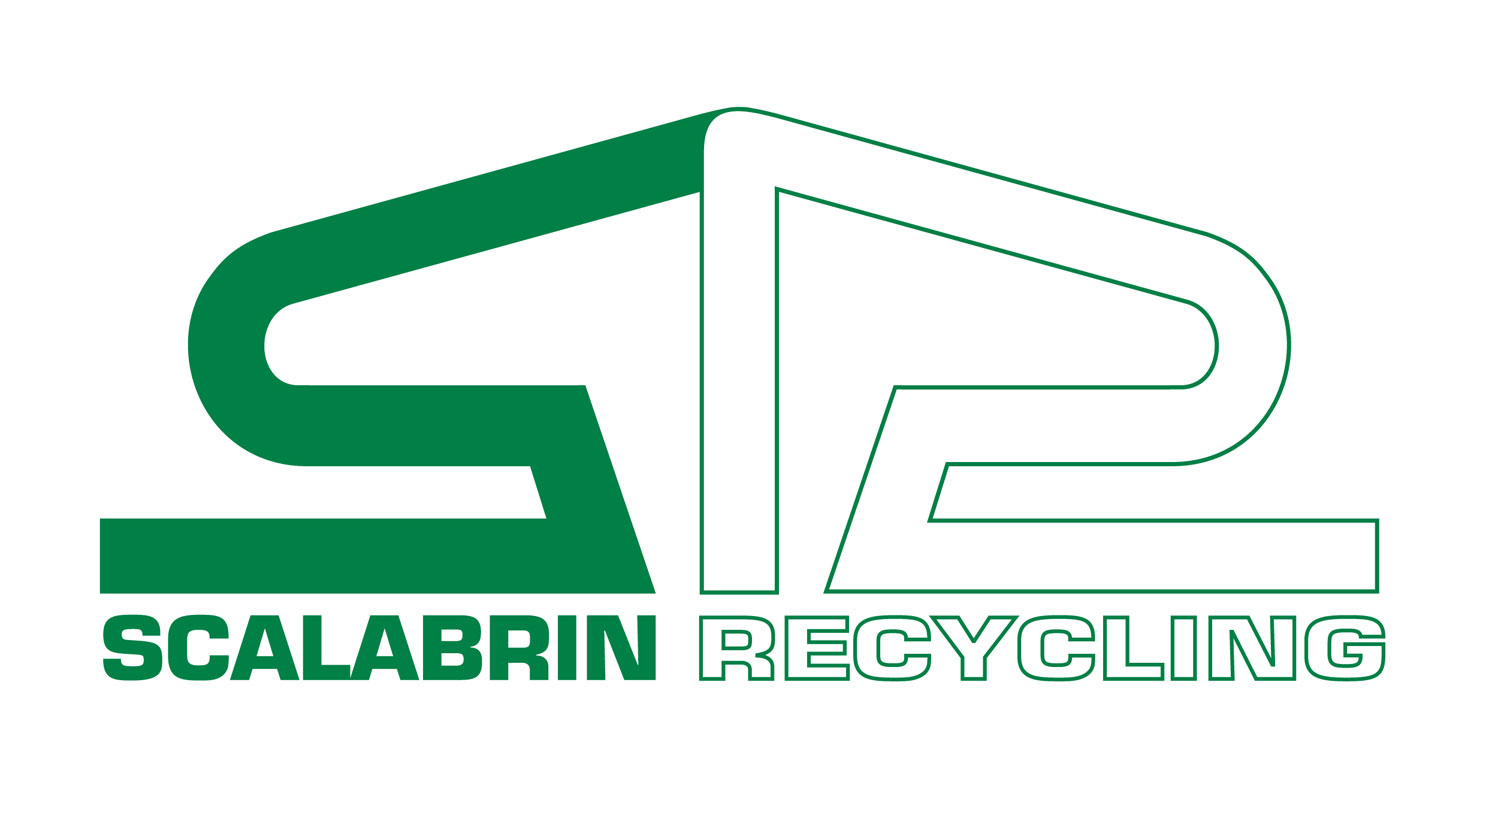 Recycling GmbH - [SCALABRIN GmbH]